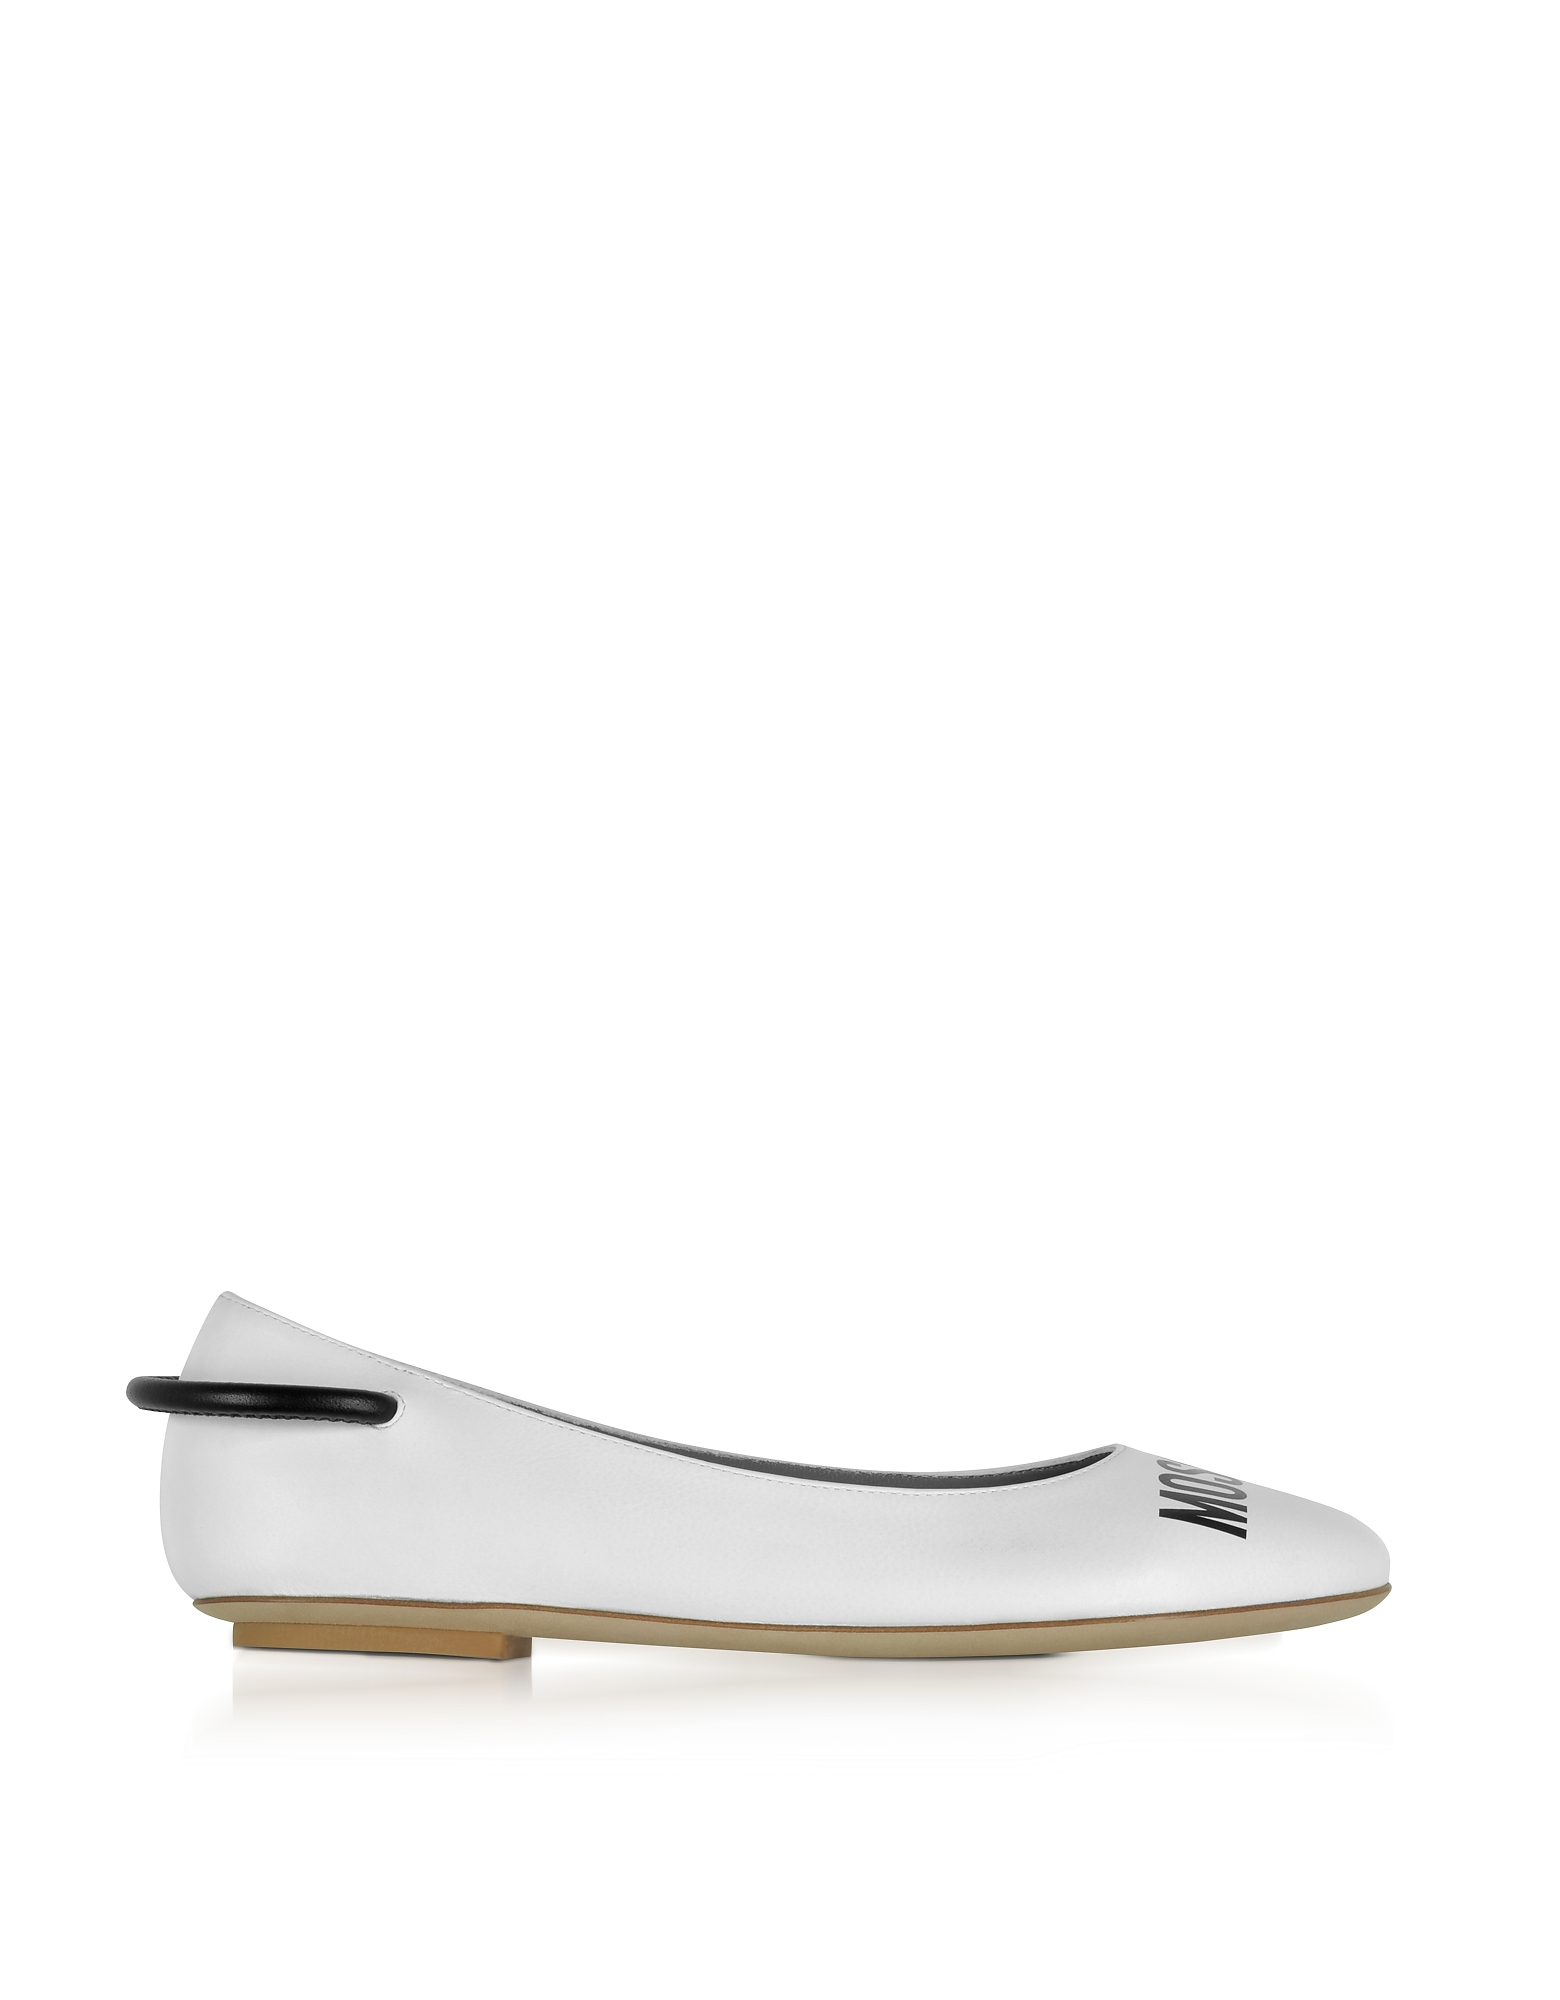 Moschino Shoes, White Nappa Leather Signature Ballerina